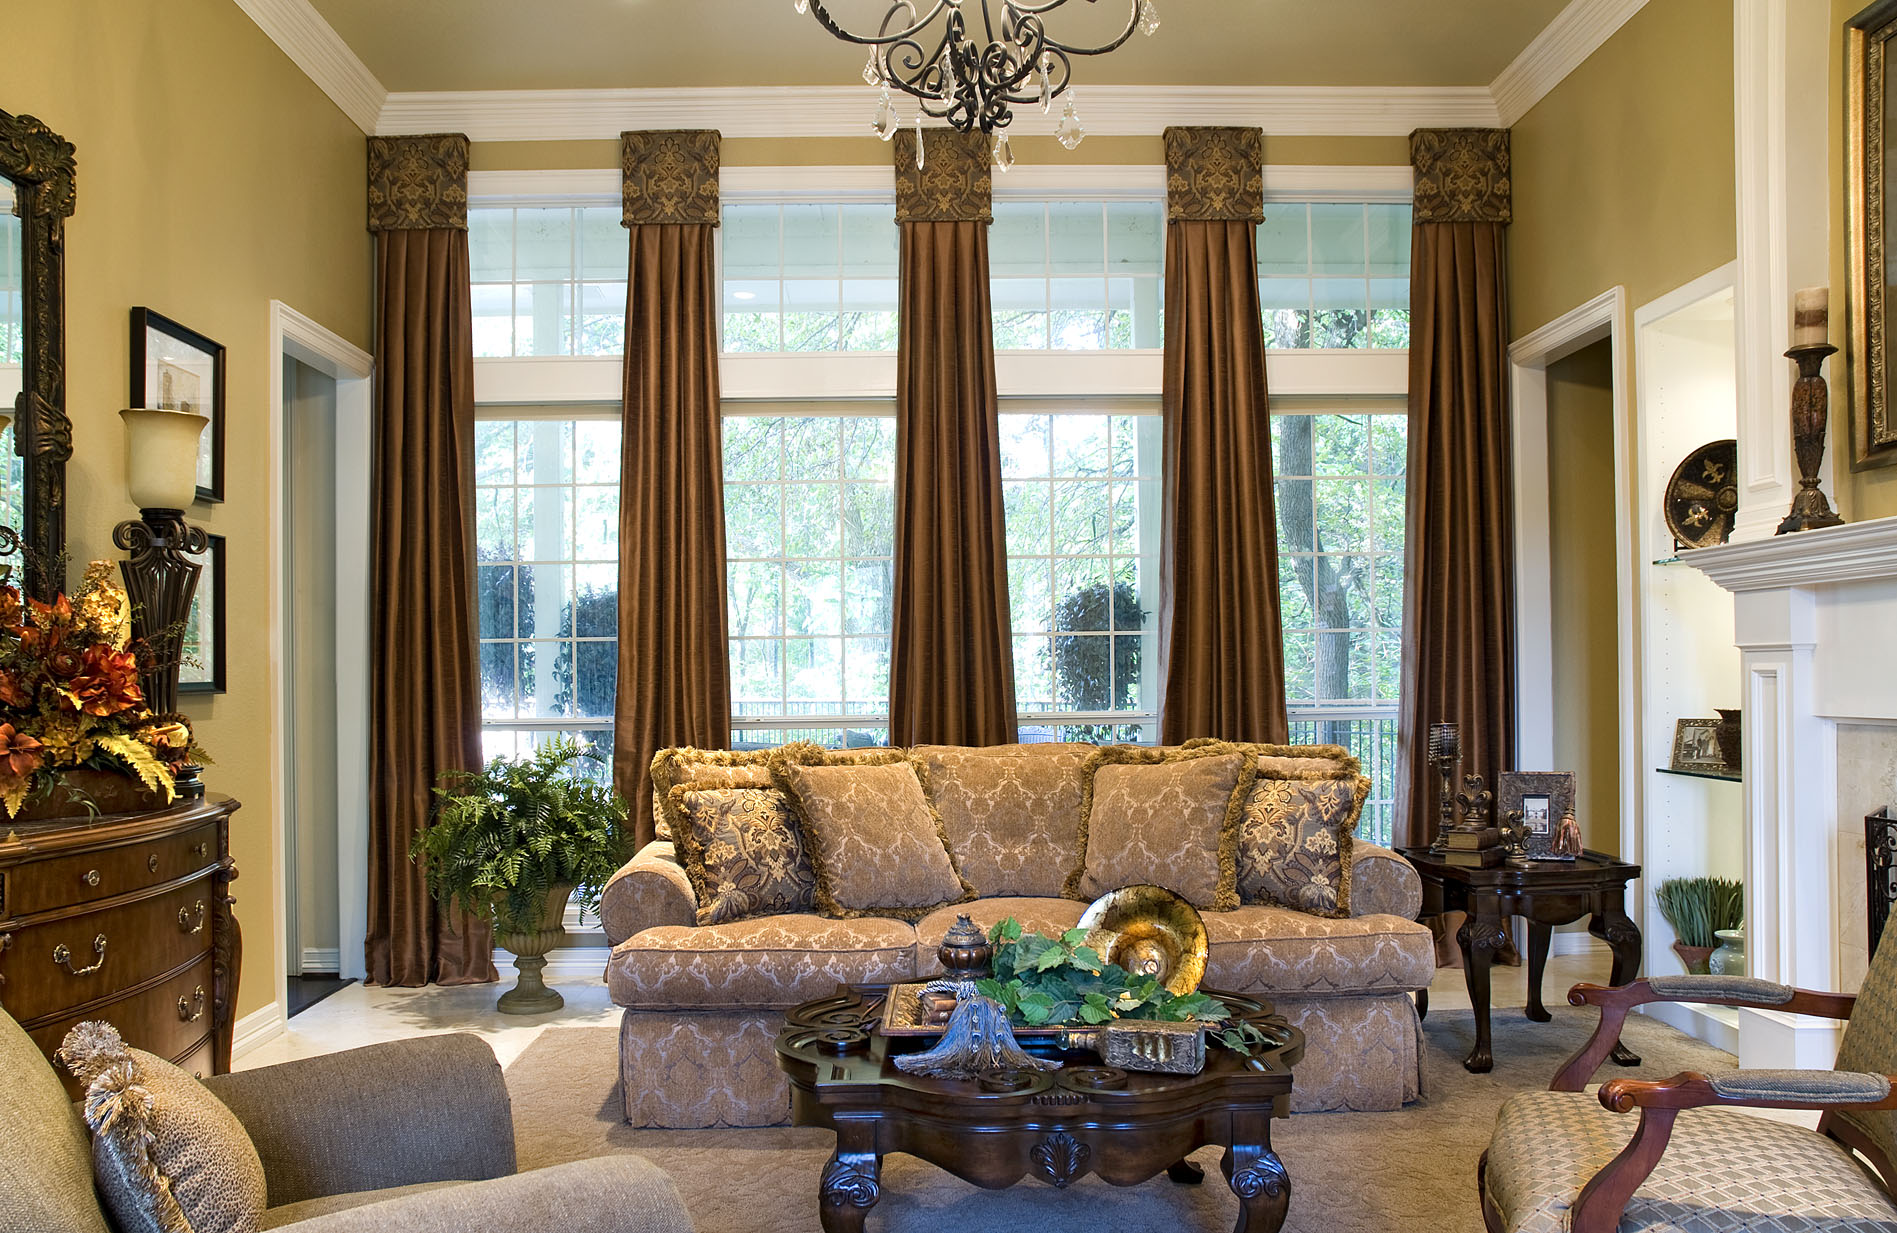 Window Curtain Decorating Ideas: Window Treatments With Drama And Panache!